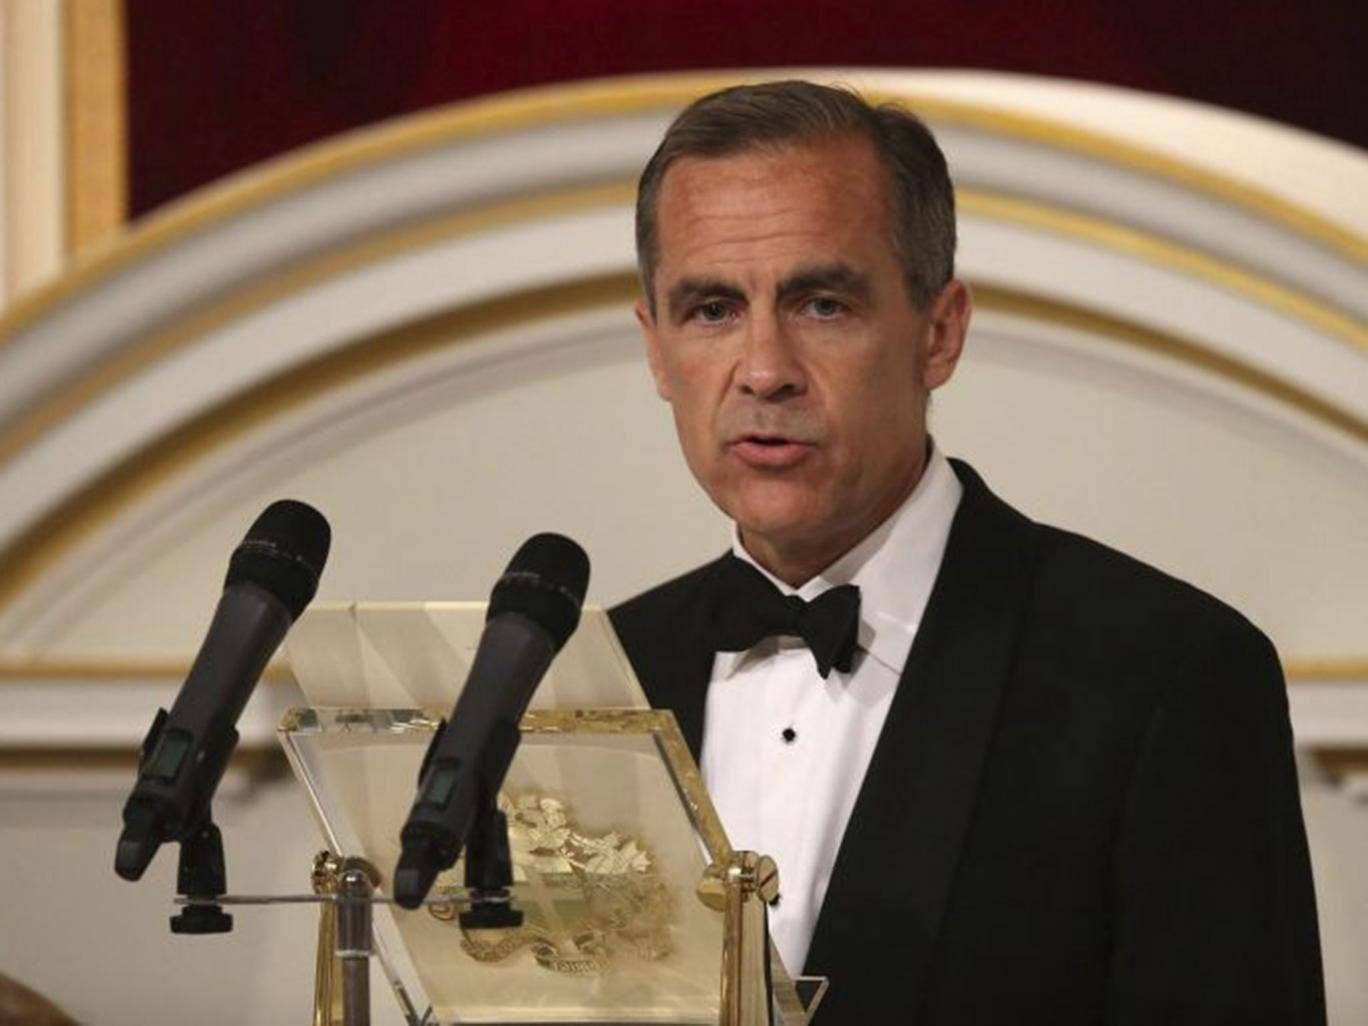 Mark Carney was speaking at his first Mansion House speech since becoming governor